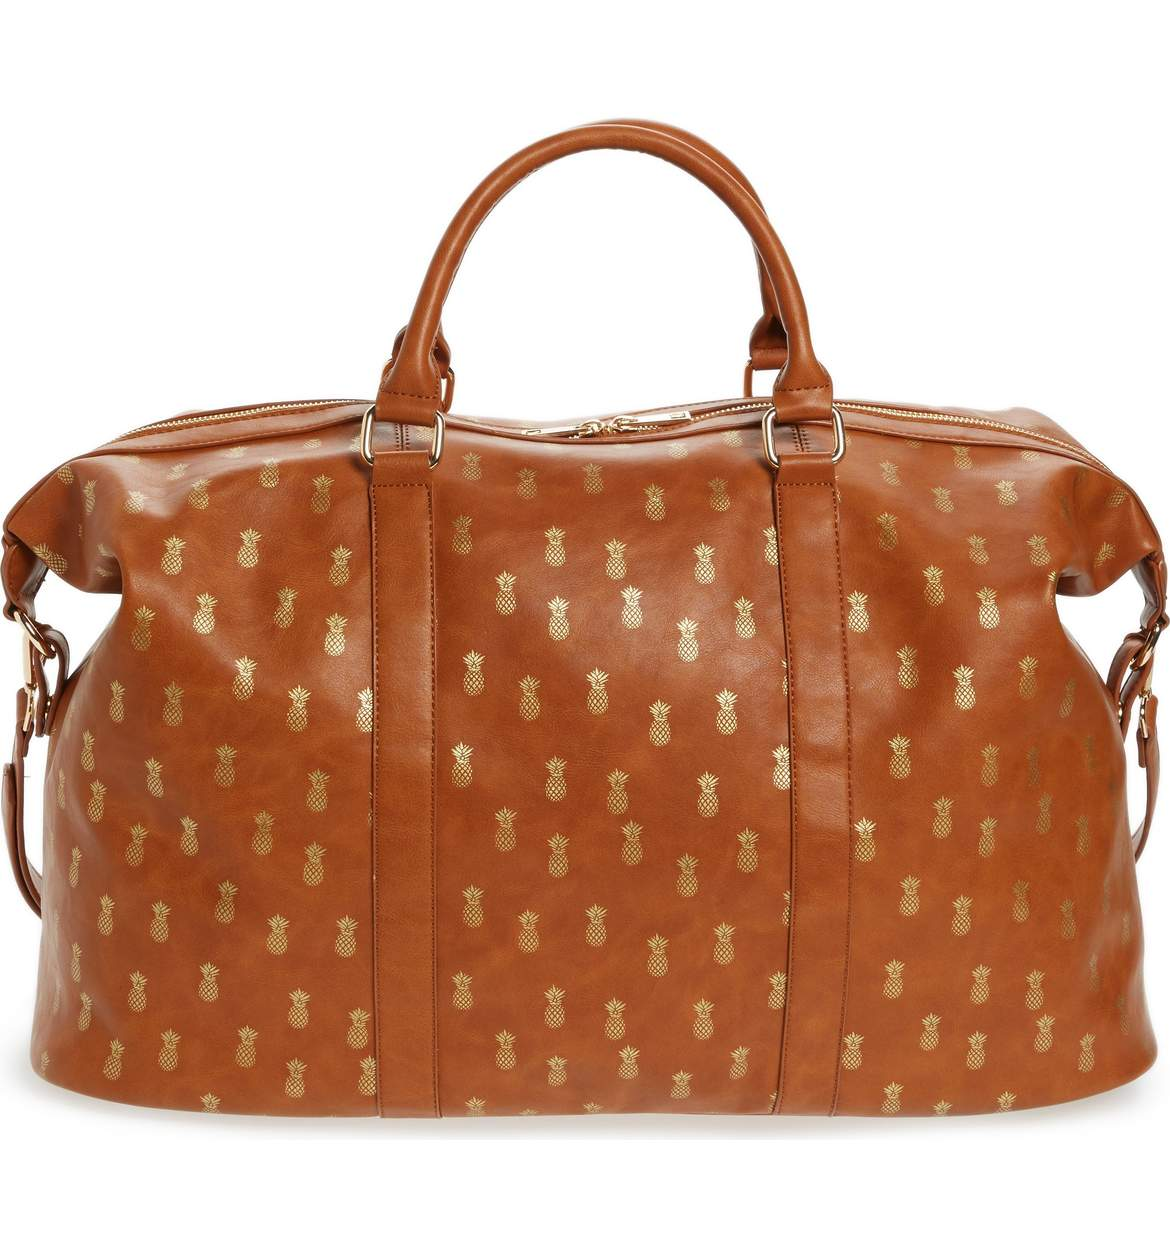 https://shop.nordstrom.com/s/sole-society-tulum-pineapple-print-weekend-duffel-bag/4635614?origin=keywordsearch-personalizedsort&fashioncolor=COGNAC